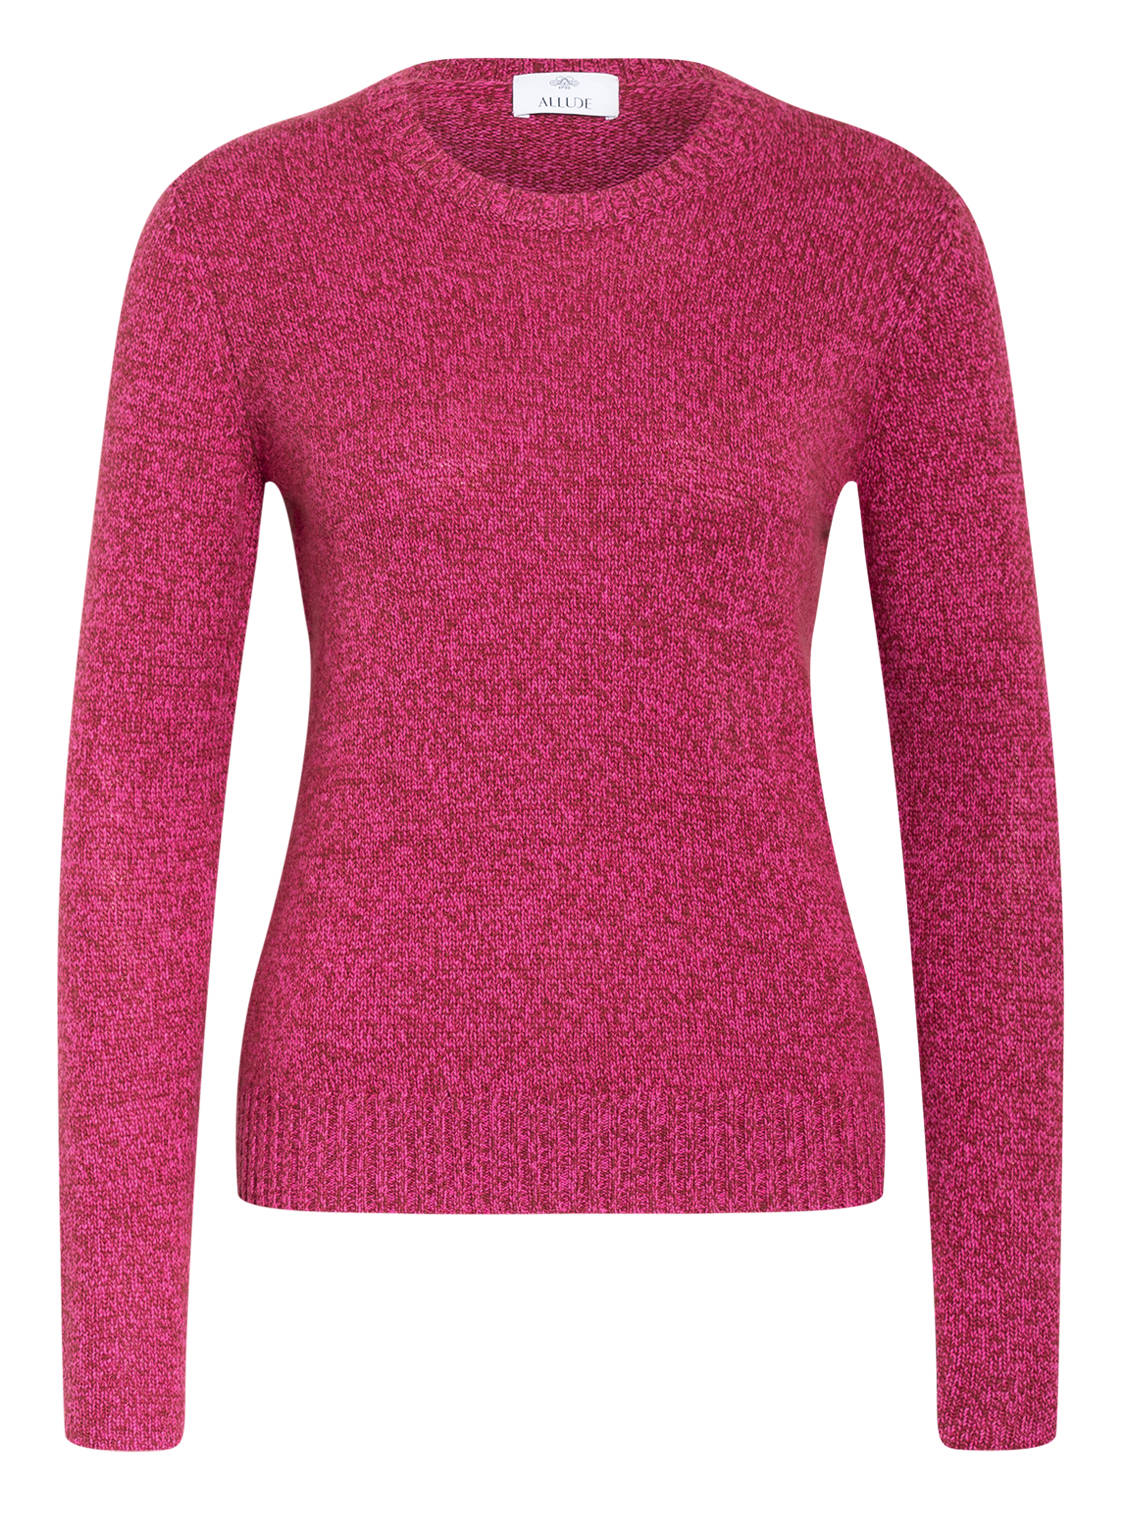 Image of Allude Cashmere-Pullover pink